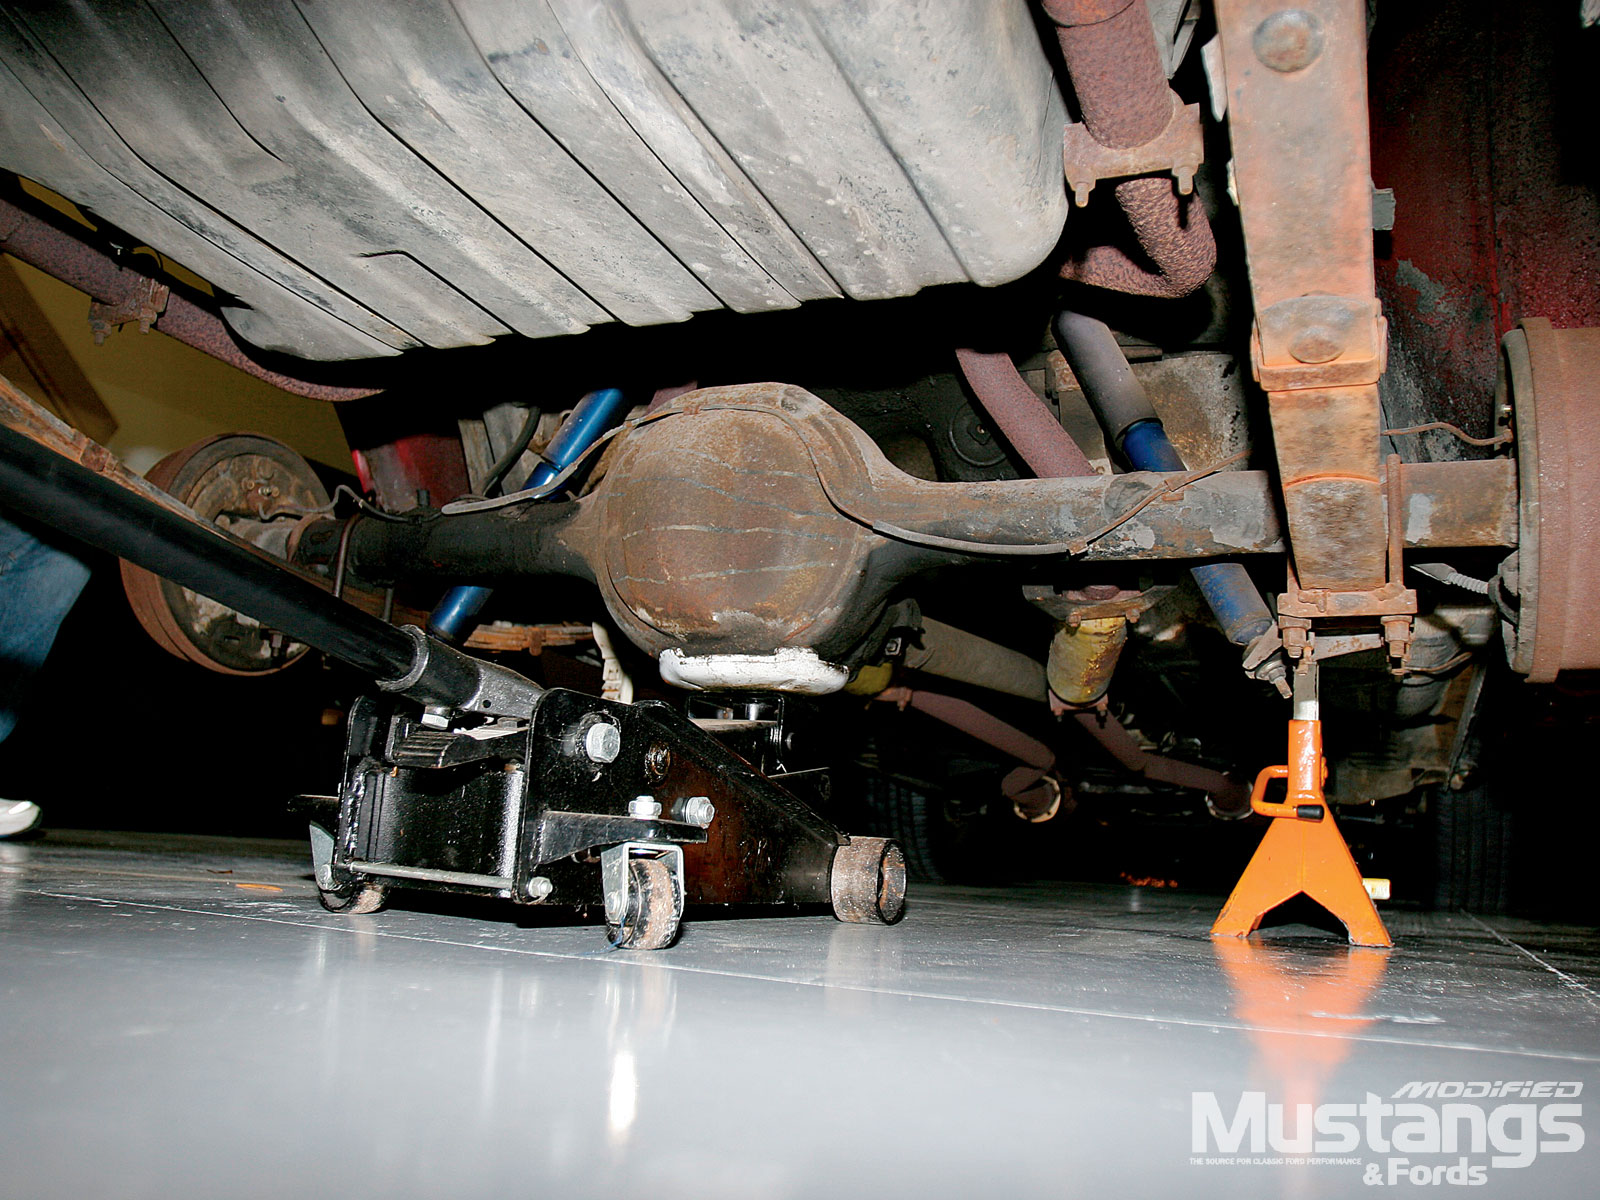 Mustangs Plus Super Starter Kit Install Axle Assembly